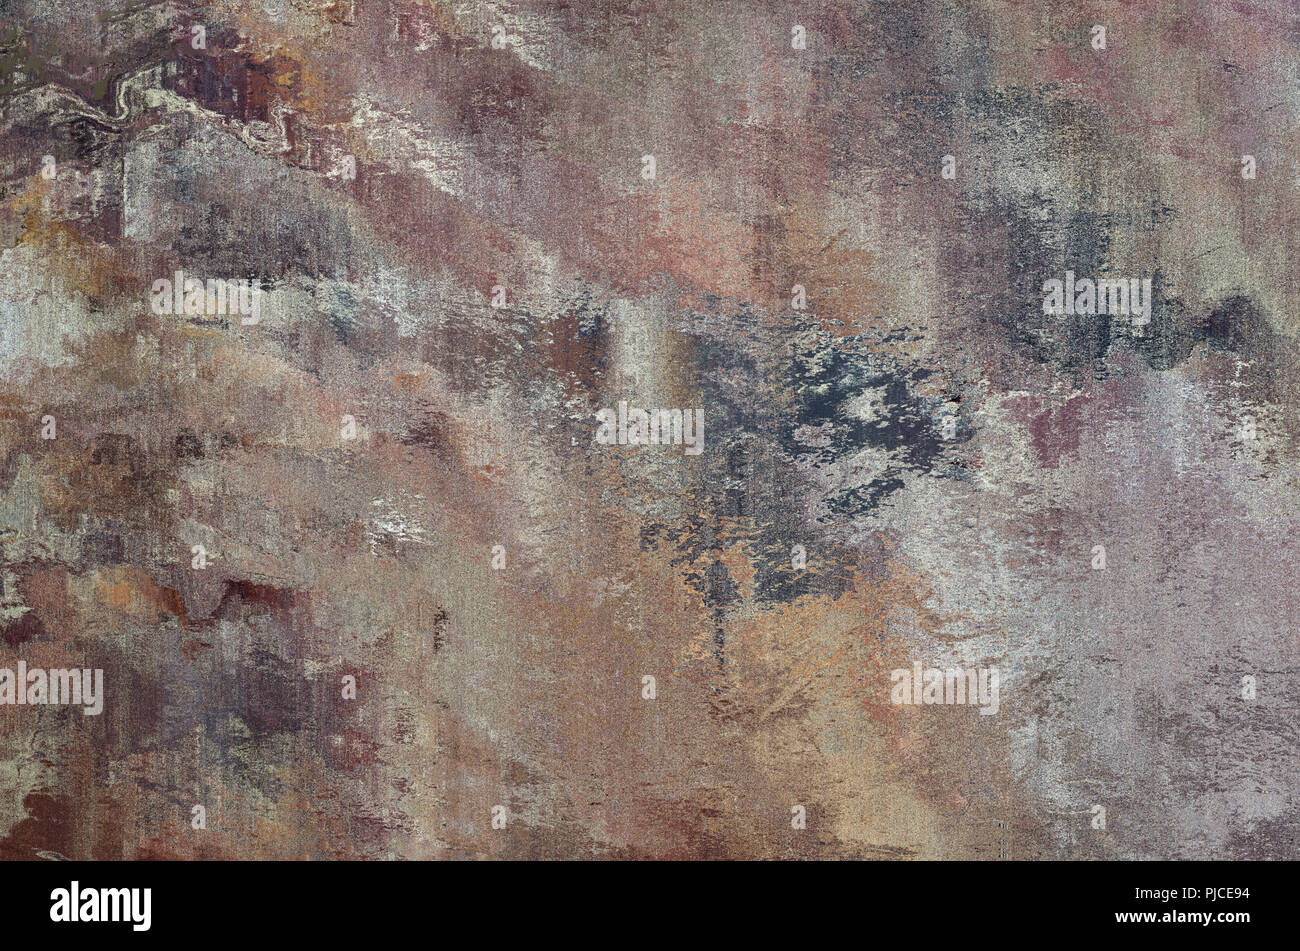 A stone effect abstract background texture with multiple blended and merging colours. Pink, purple, grey, gold and brown. - Stock Image